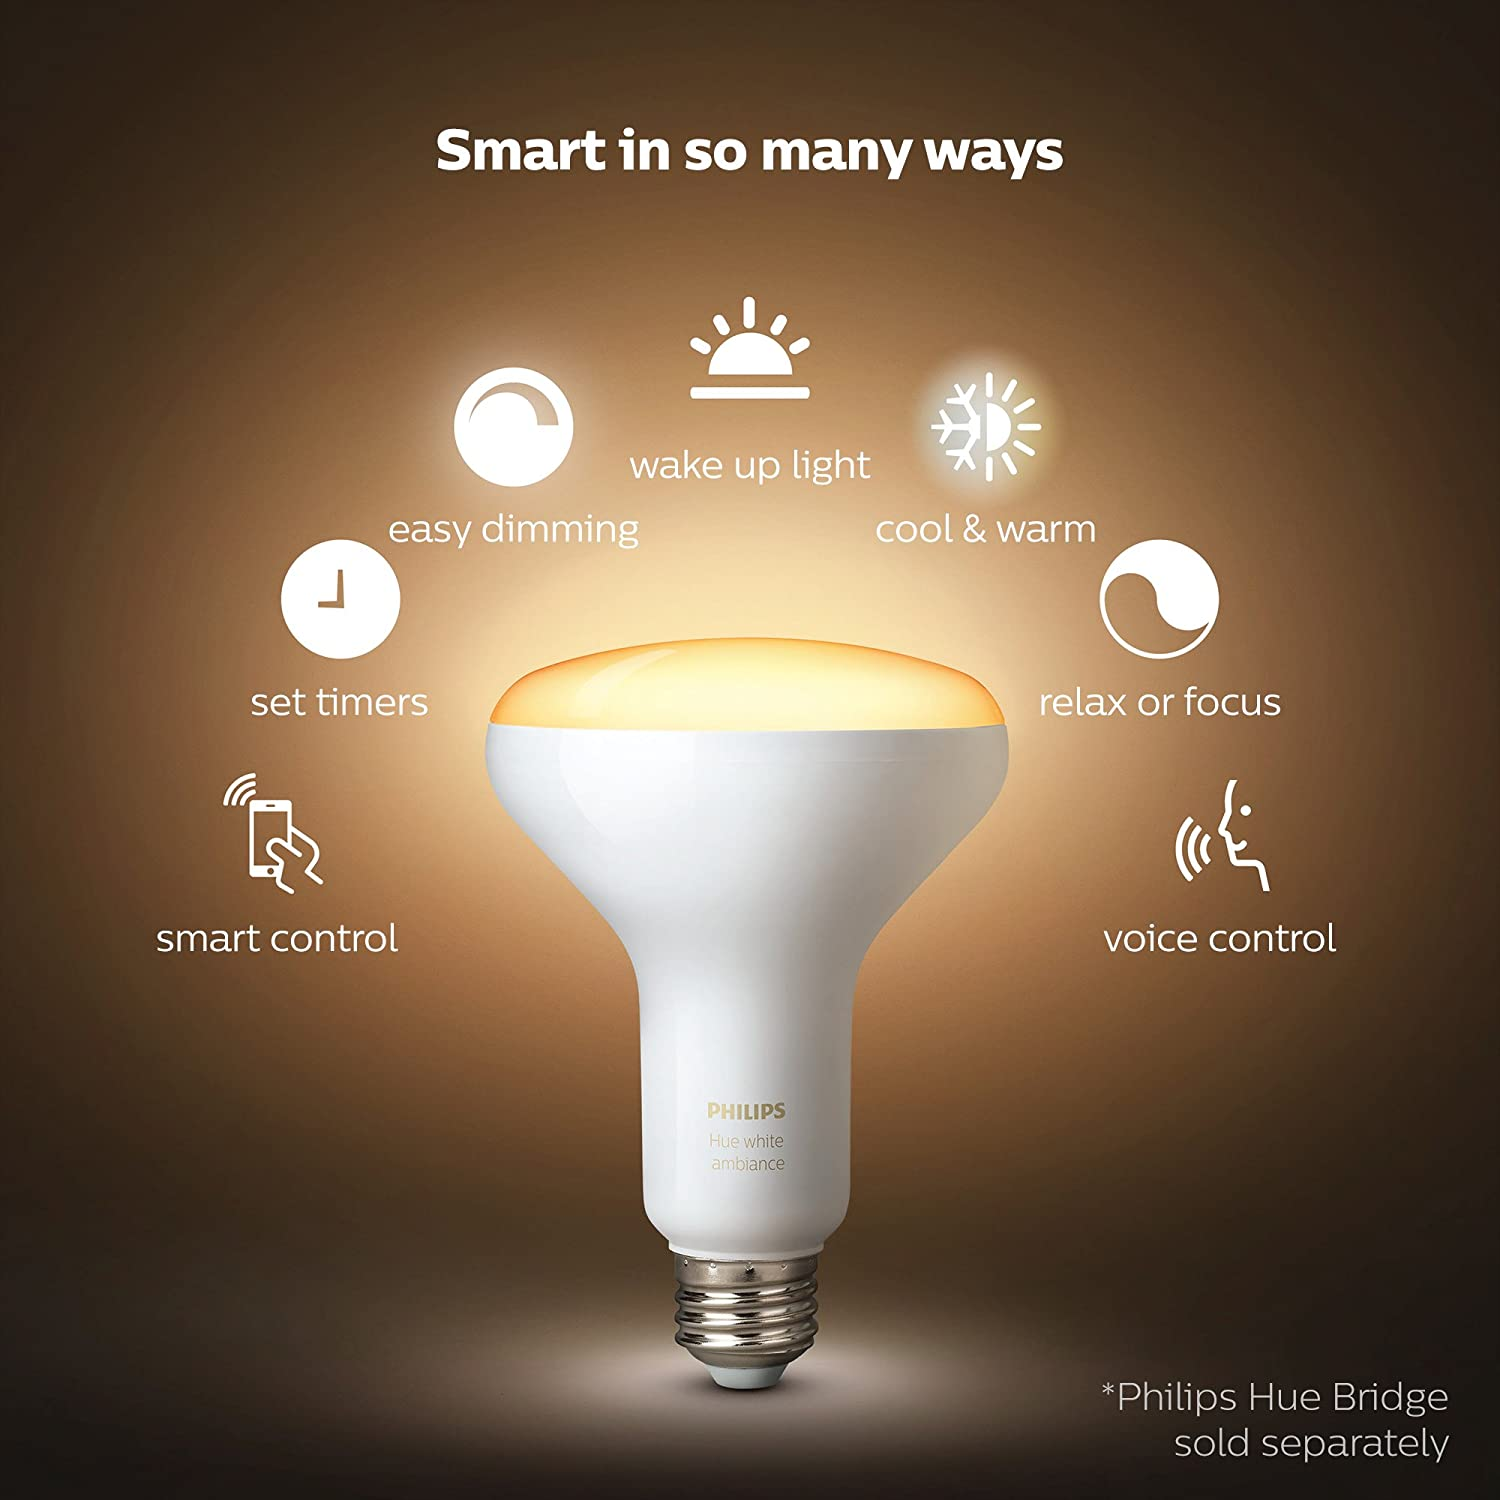 Ambiance And Lightworks Smart Dimmable Br30 2 Google Philips v6yfY7gb